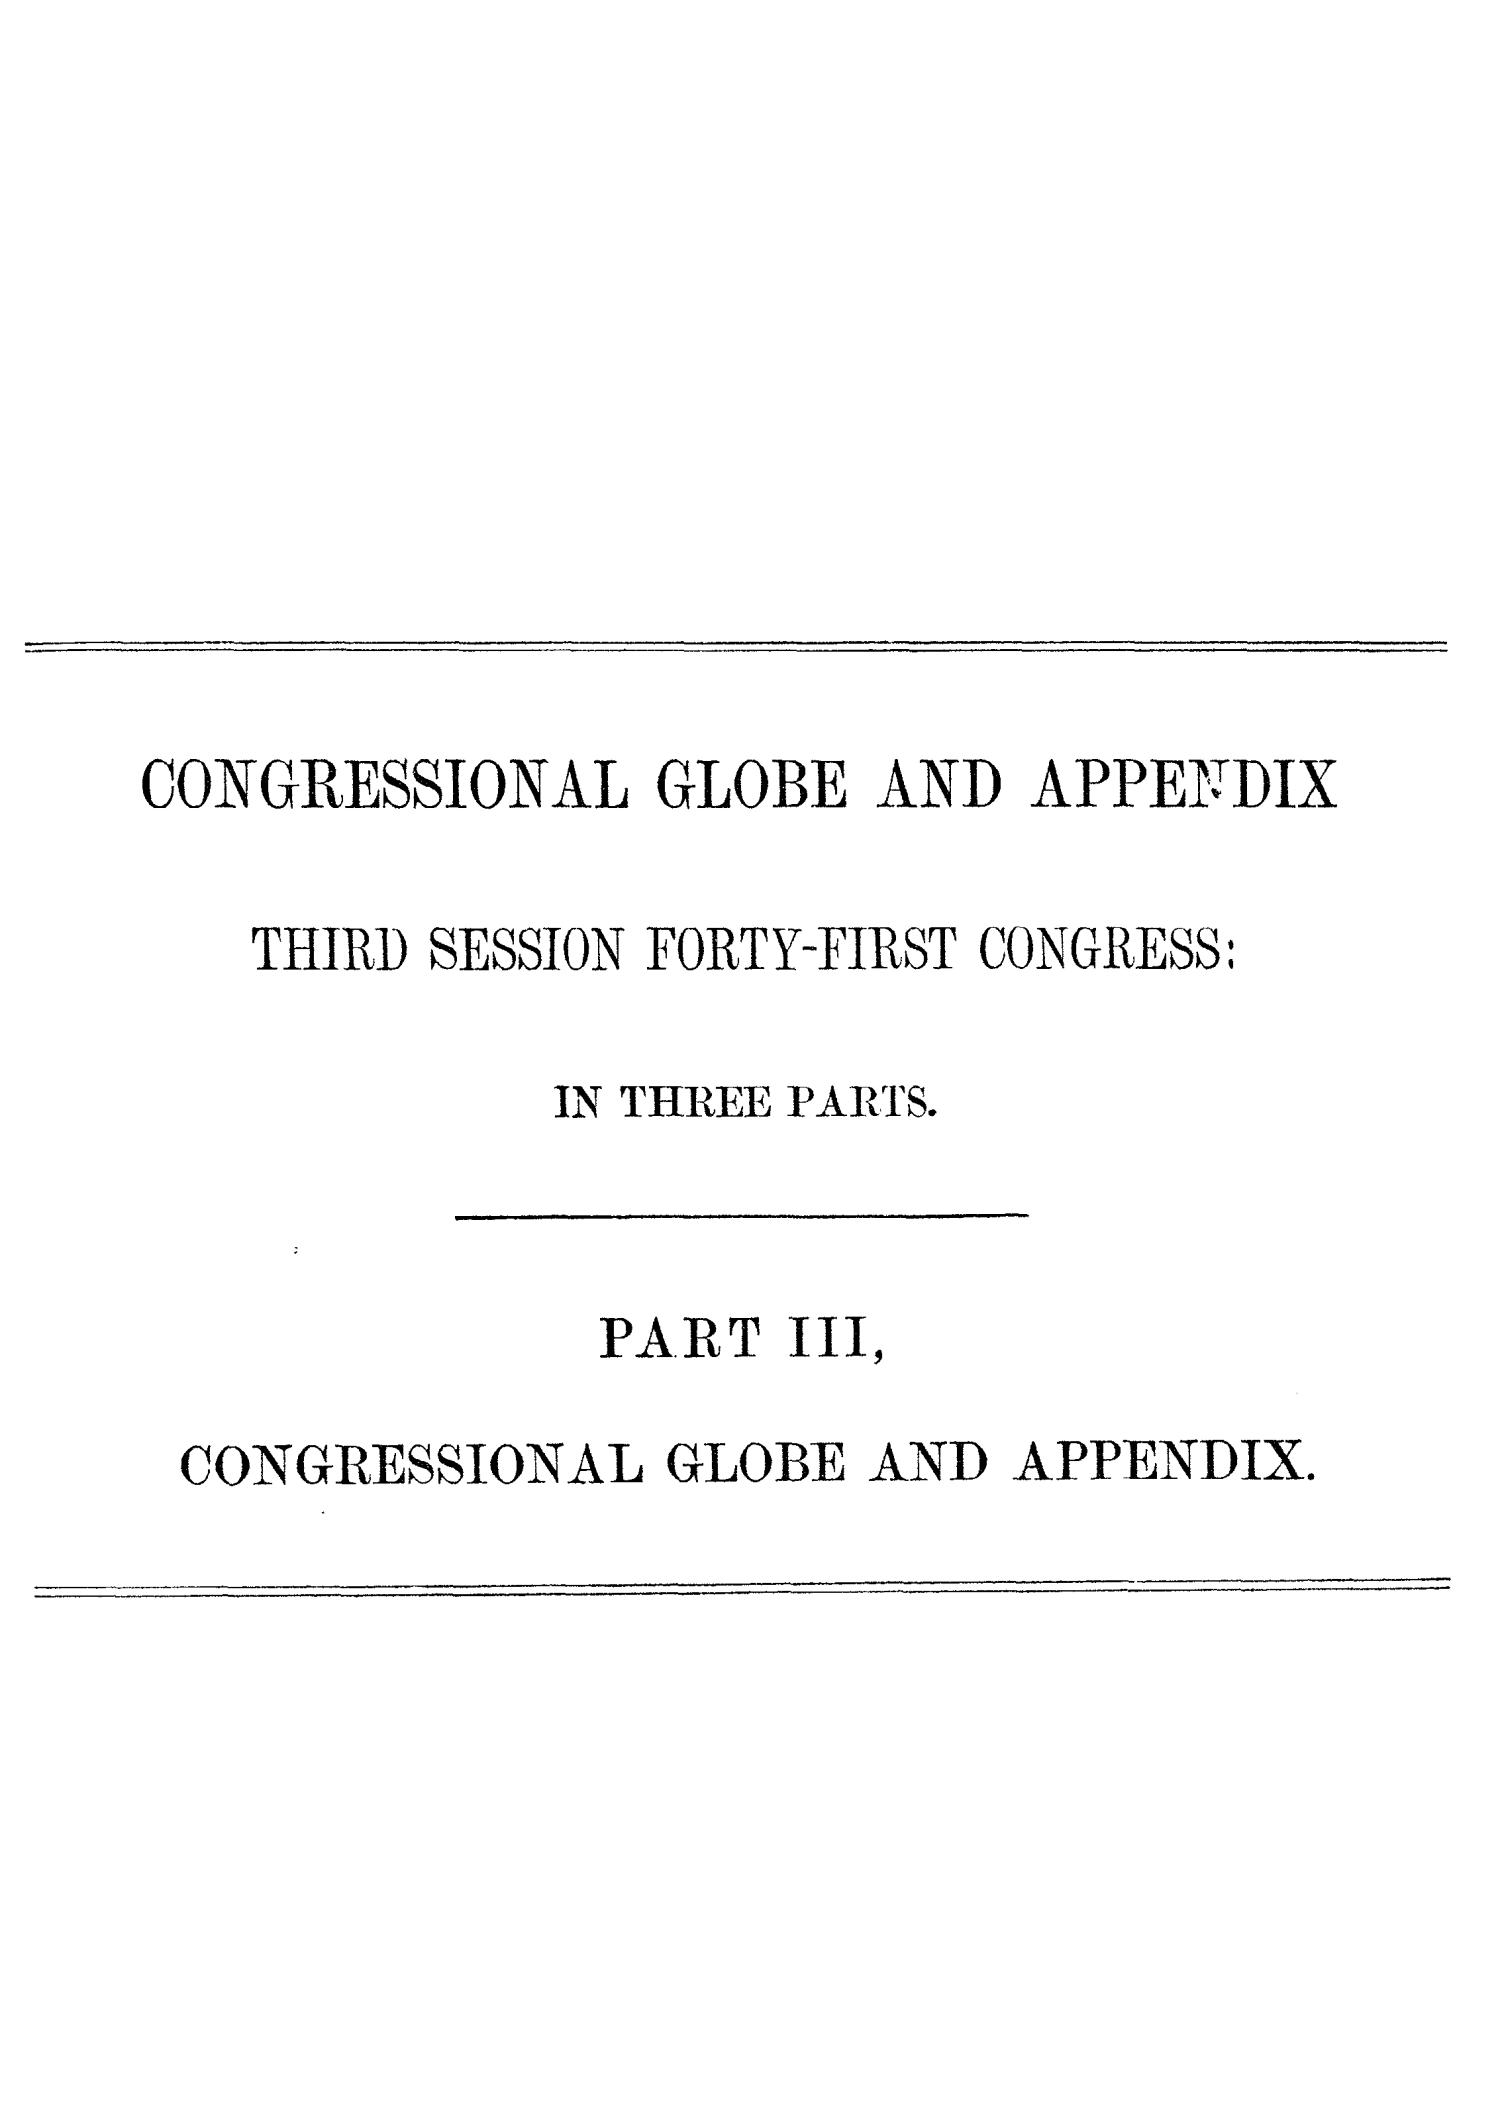 The Congressional Globe: Containing the Debates and Proceedings of the Third Session Forty-First Congress; Together With an Appendix, Embracing the Laws Passed at that Session                                                                                                      None